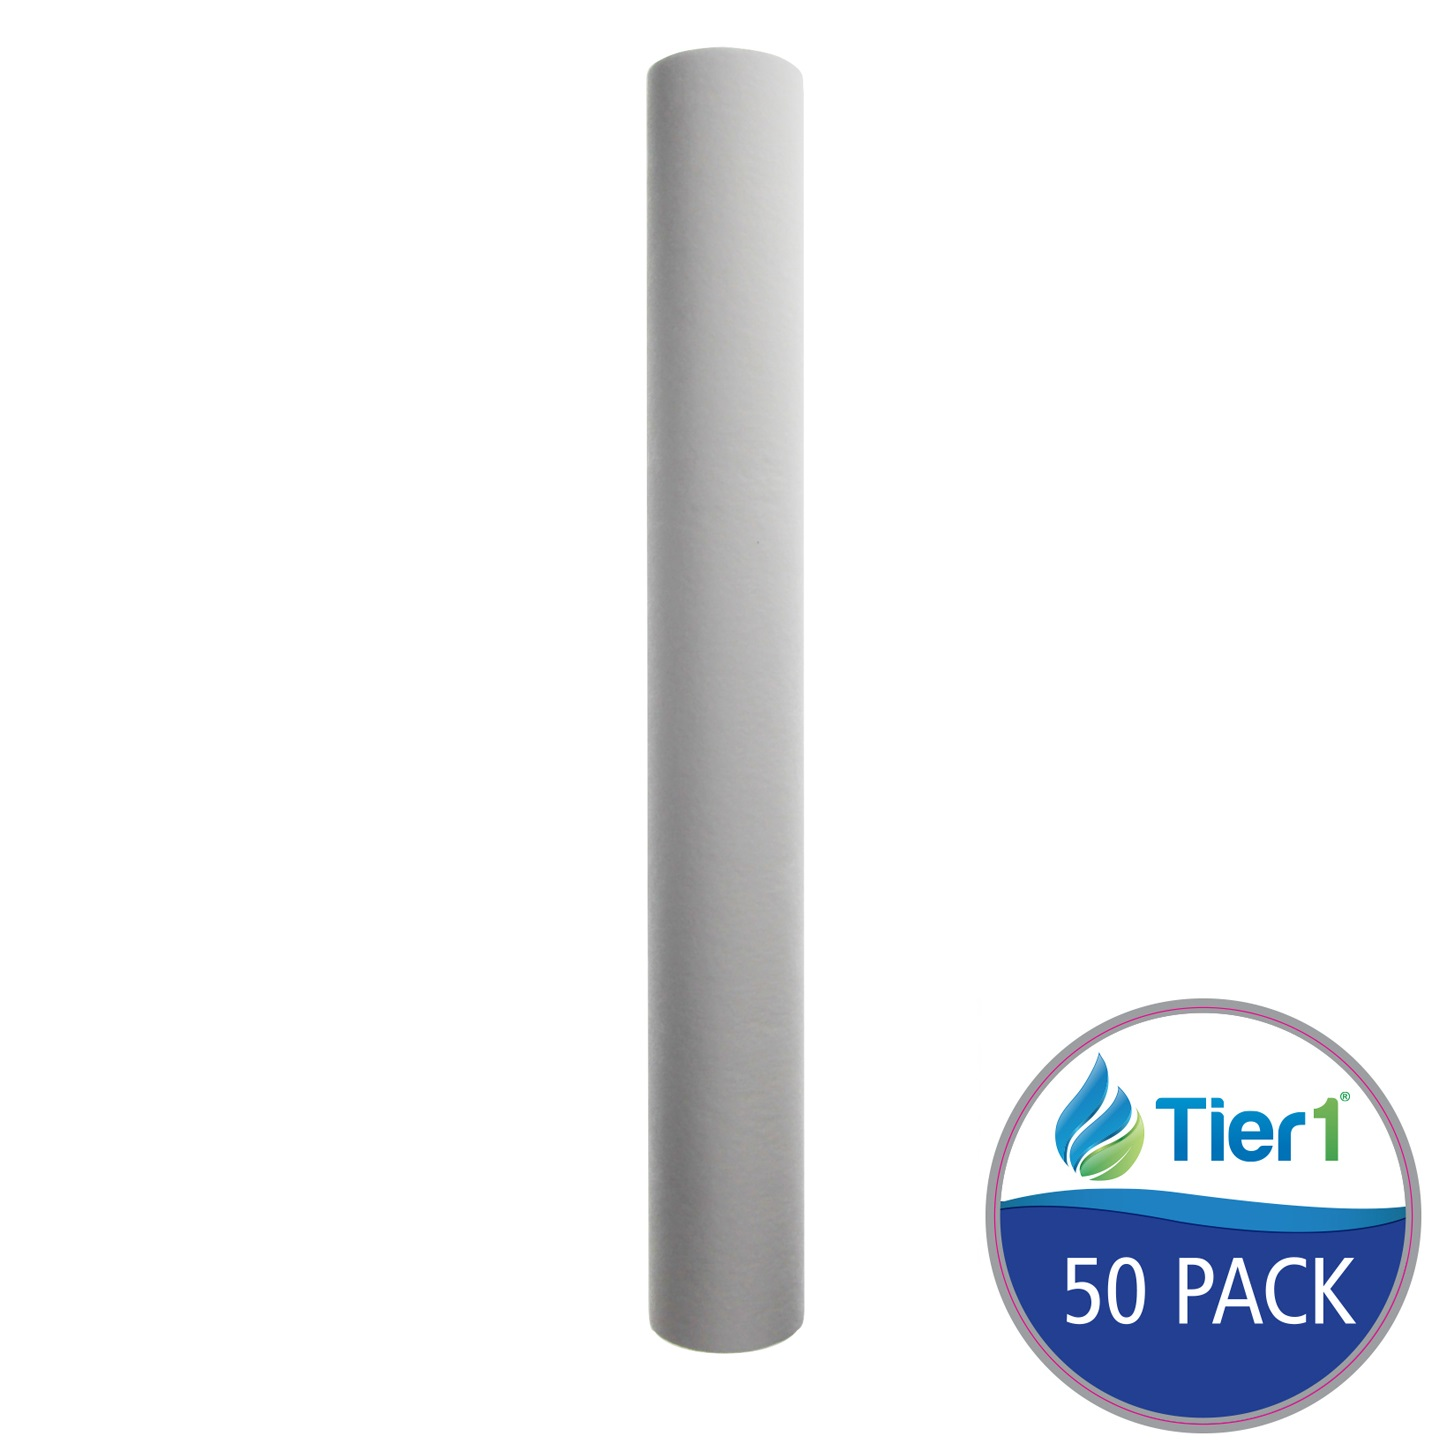 20 X 2.5 Spun Wound Polypropylene Replacement Filter by Tier1 (10 micron) (50-Pack) TIER1_P10_20_50_PACK